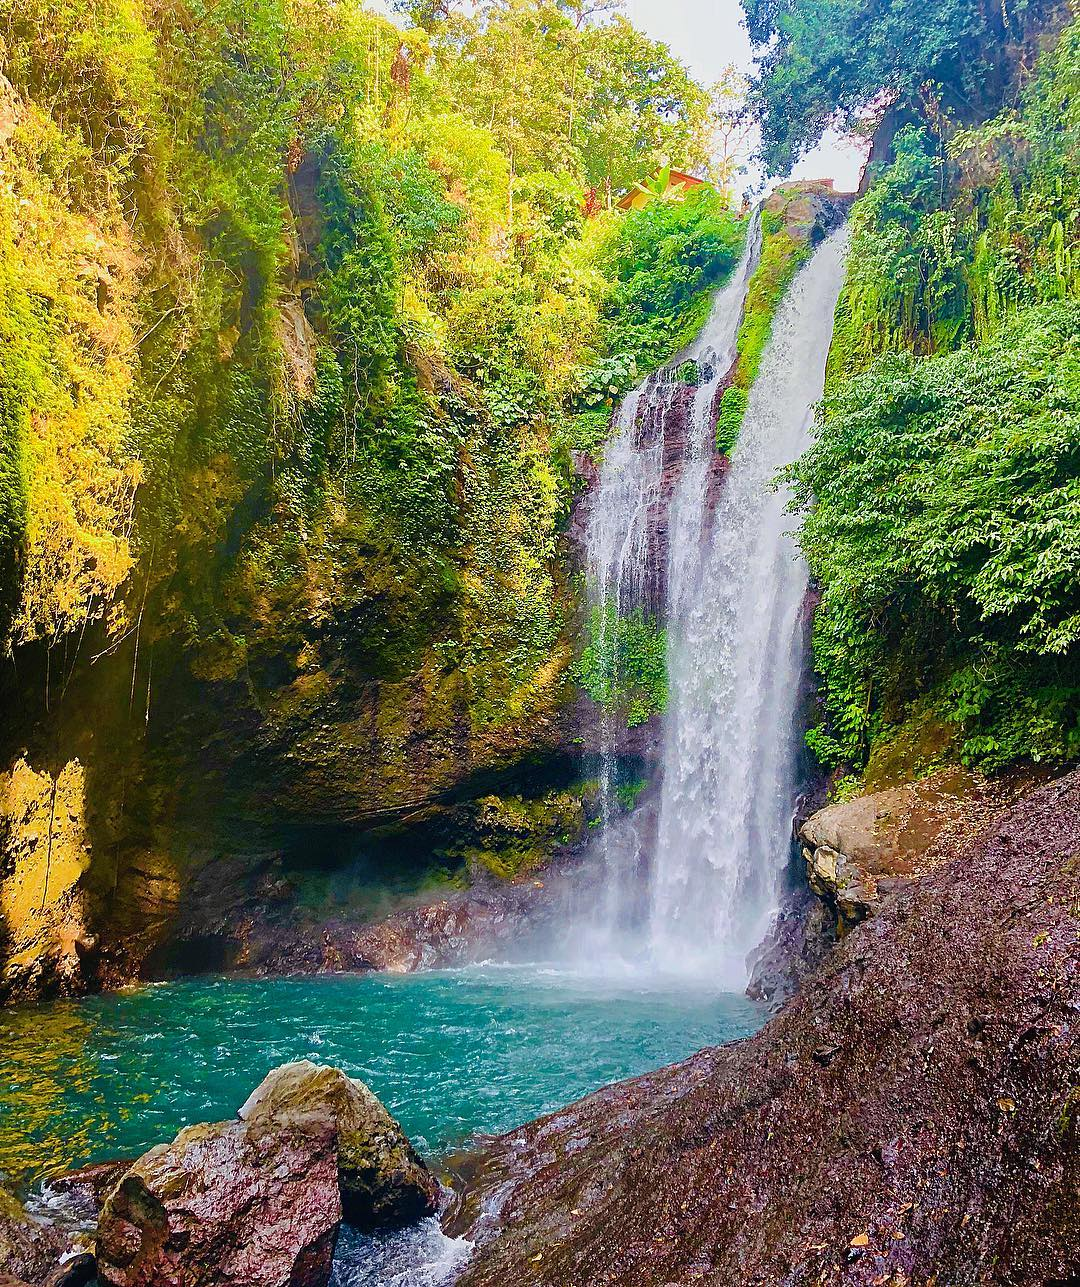 Aling-Aling Waterfall Bali Complete Guide For Tourist. via @marky_joven